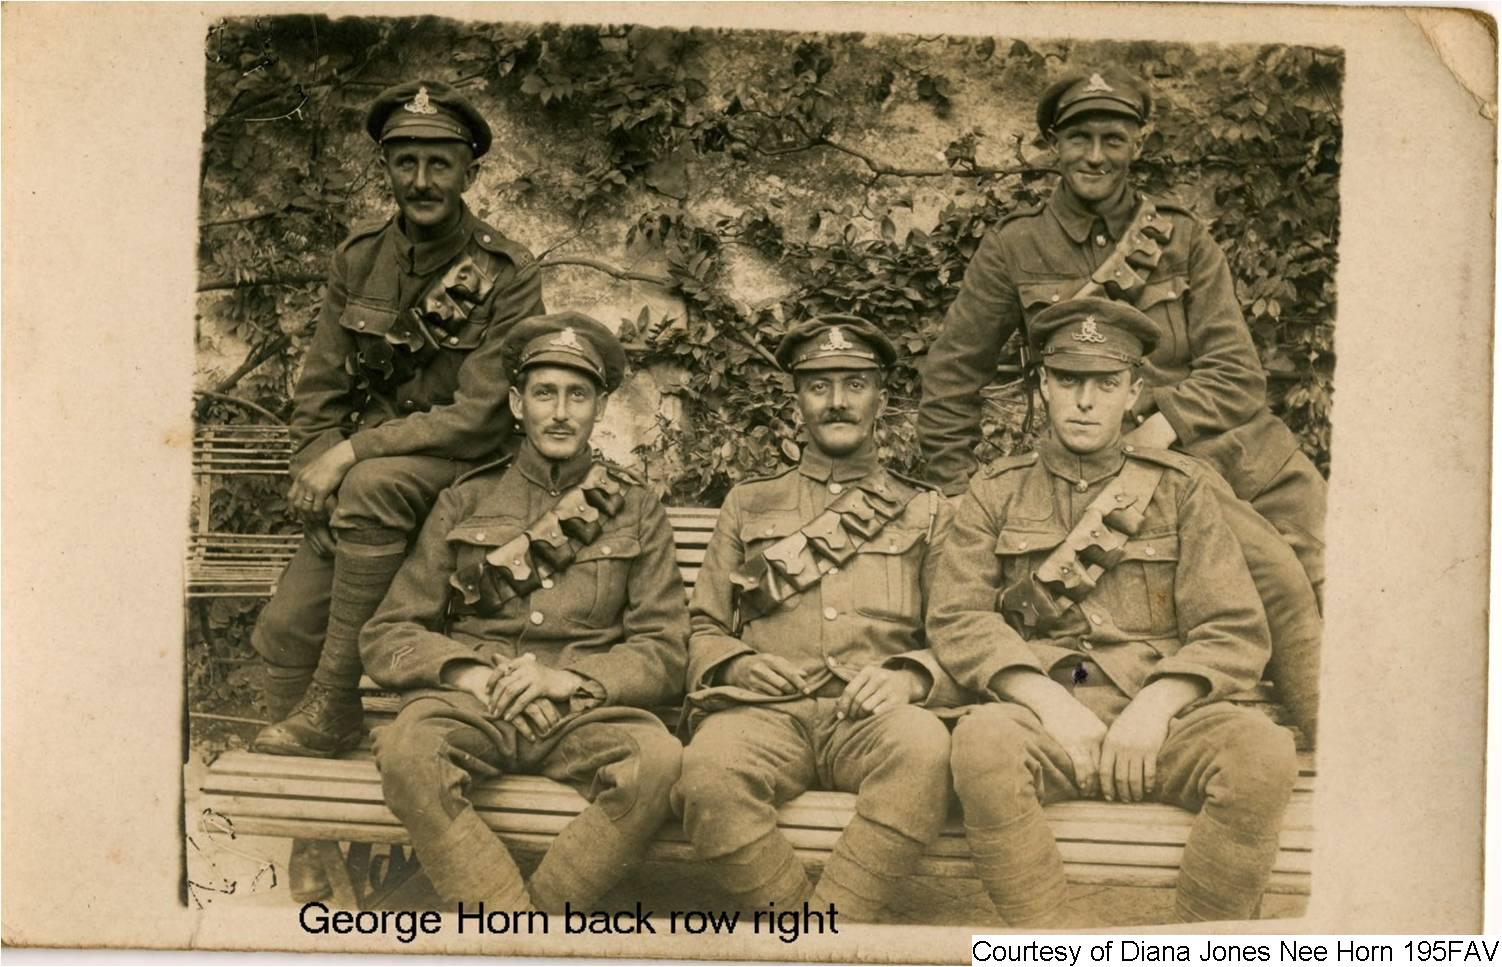 195FAV - George Horn with the Garrison Artillery